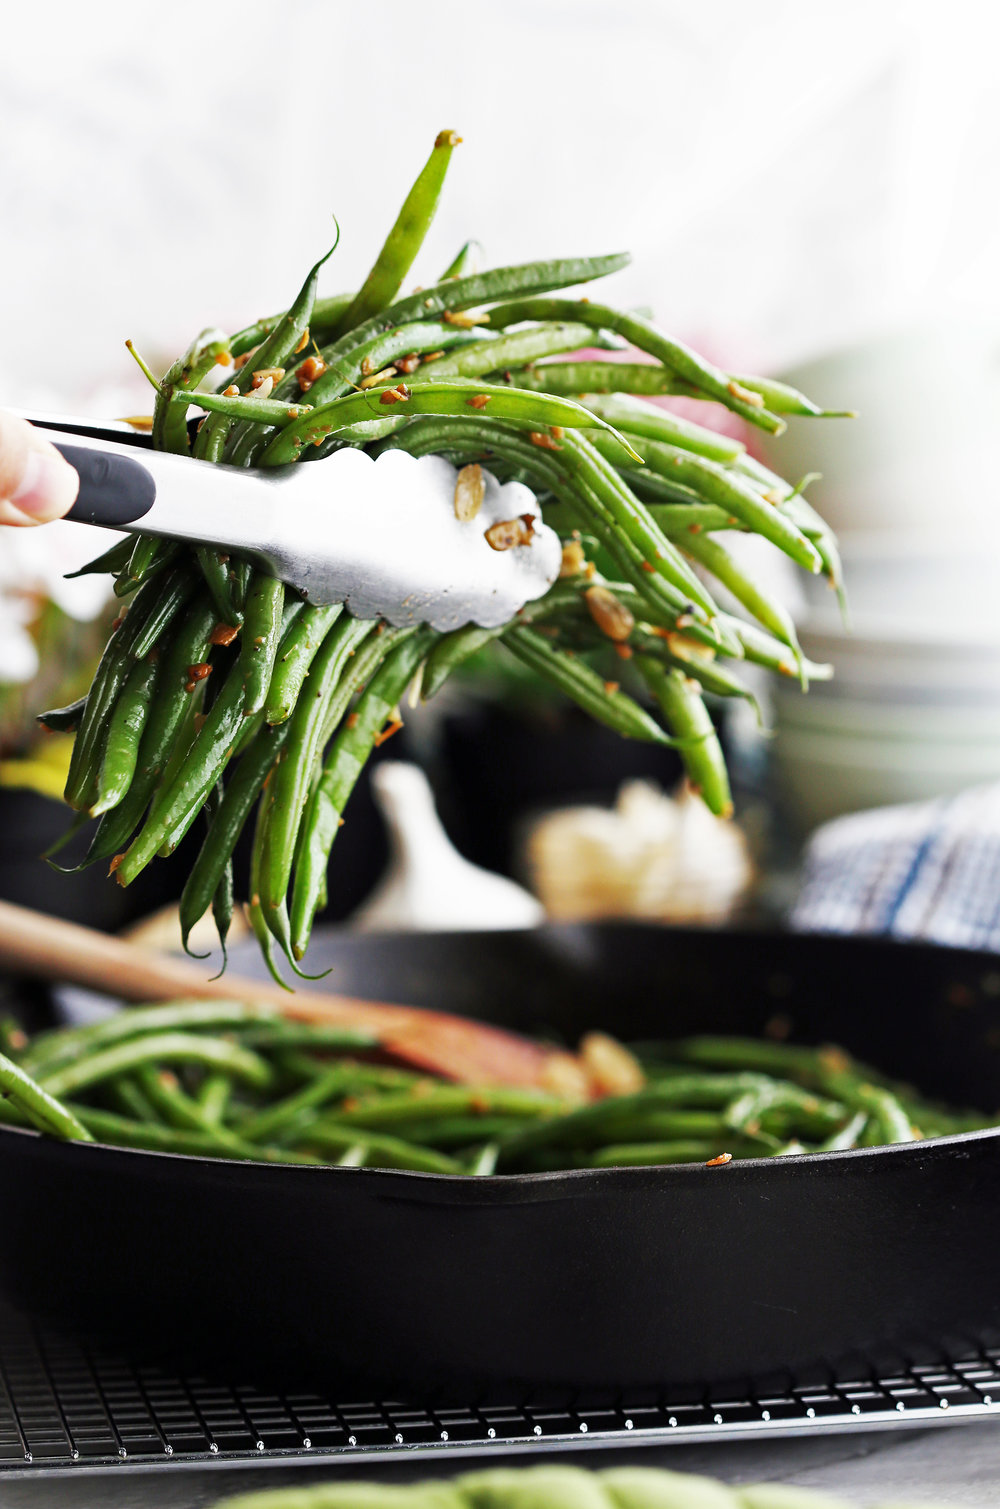 Metal tongs holding garlic ginger green beans with more green beans in a cast iron skillet below.